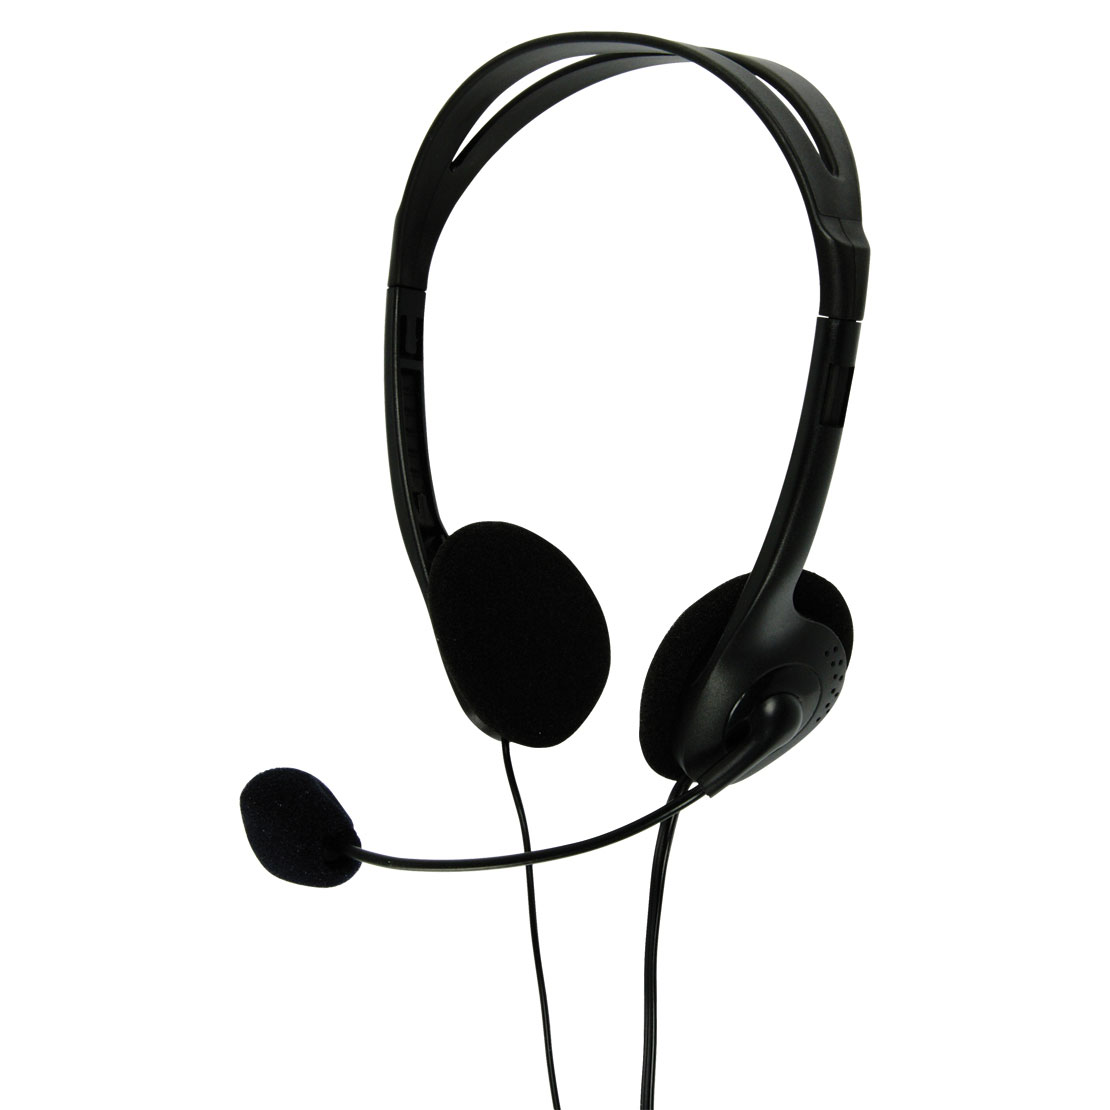 Multimedia Headphones with Flexible Microphone - in Black - CHST100BK